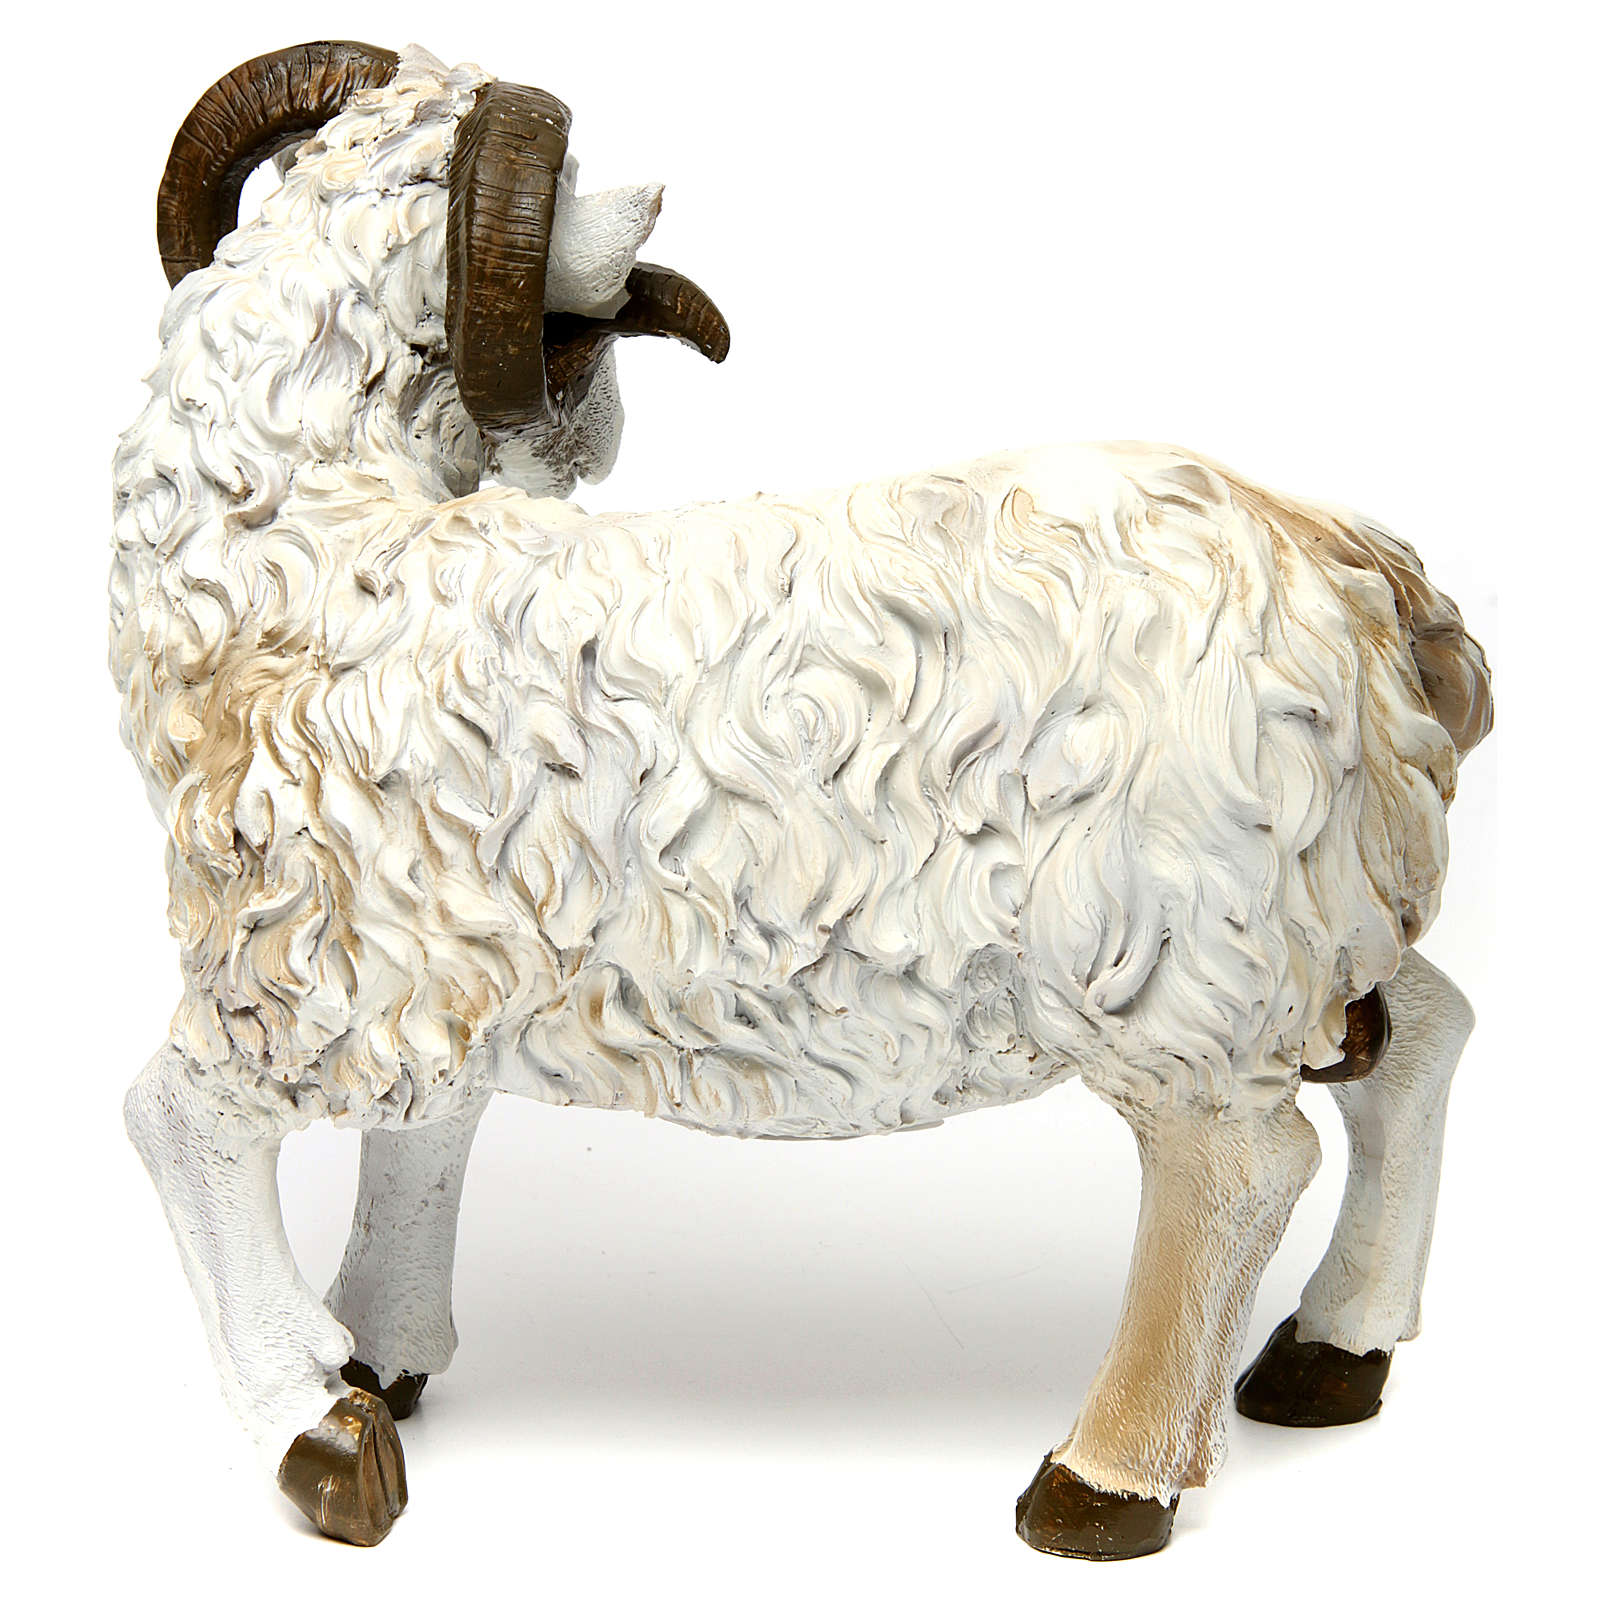 Ram in resin for 60 cm Nativity scene 3